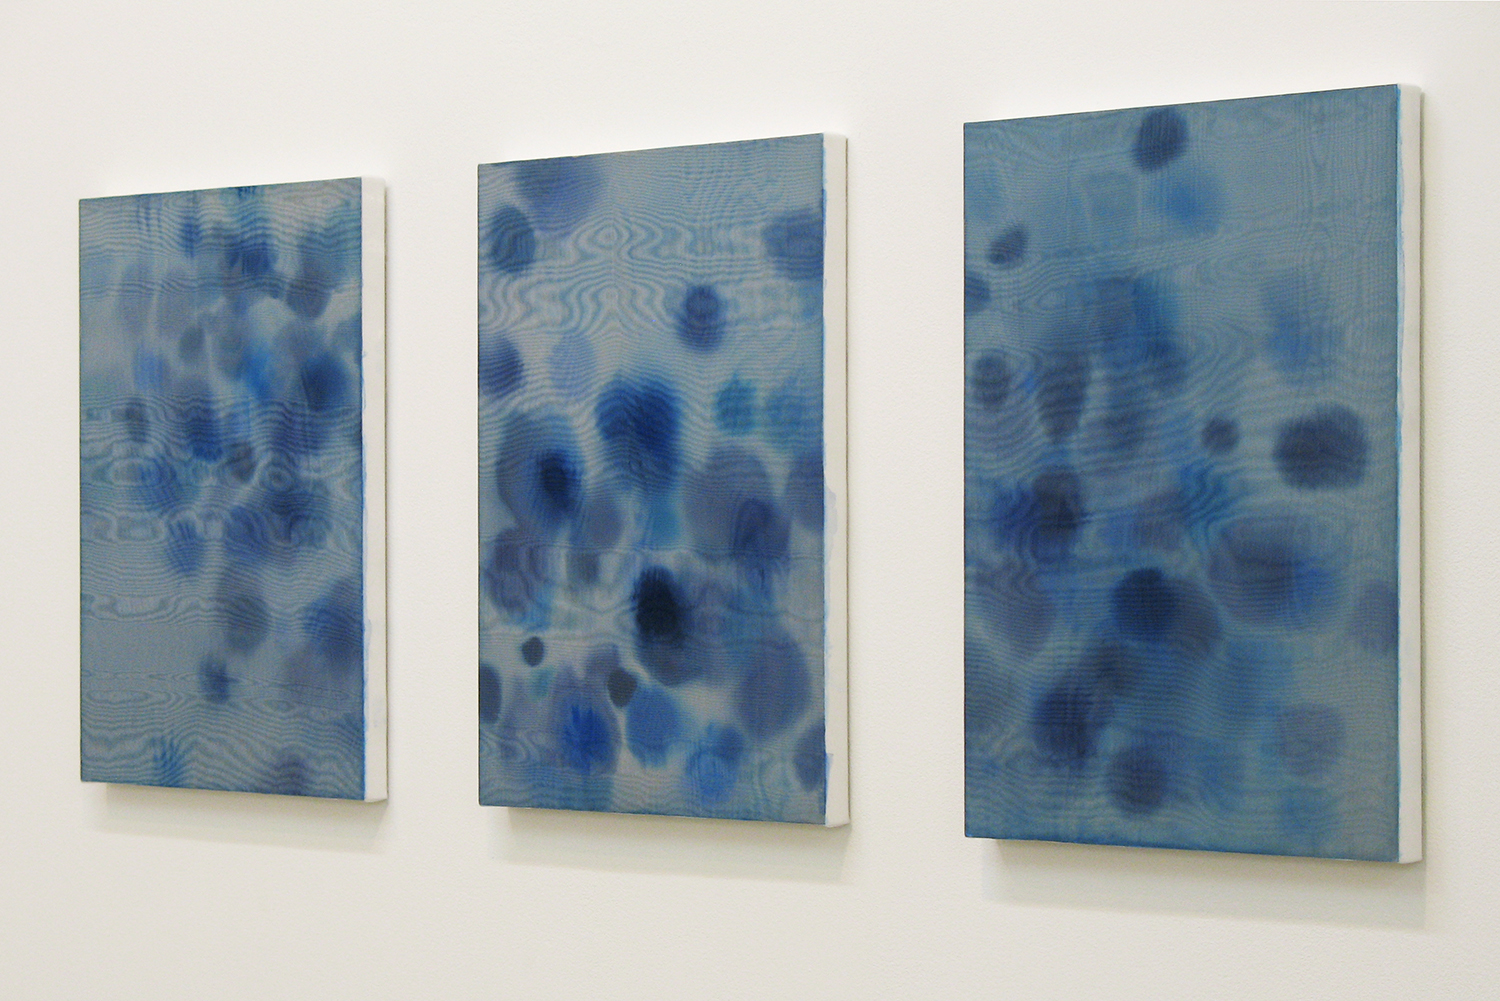 雨音(sound of rain)|雨音(sound of rain)|雨音(sound of rain)<br>panel, stainless steel sheet, glass organdy, acrylic|410  x 320 mm|2009 each